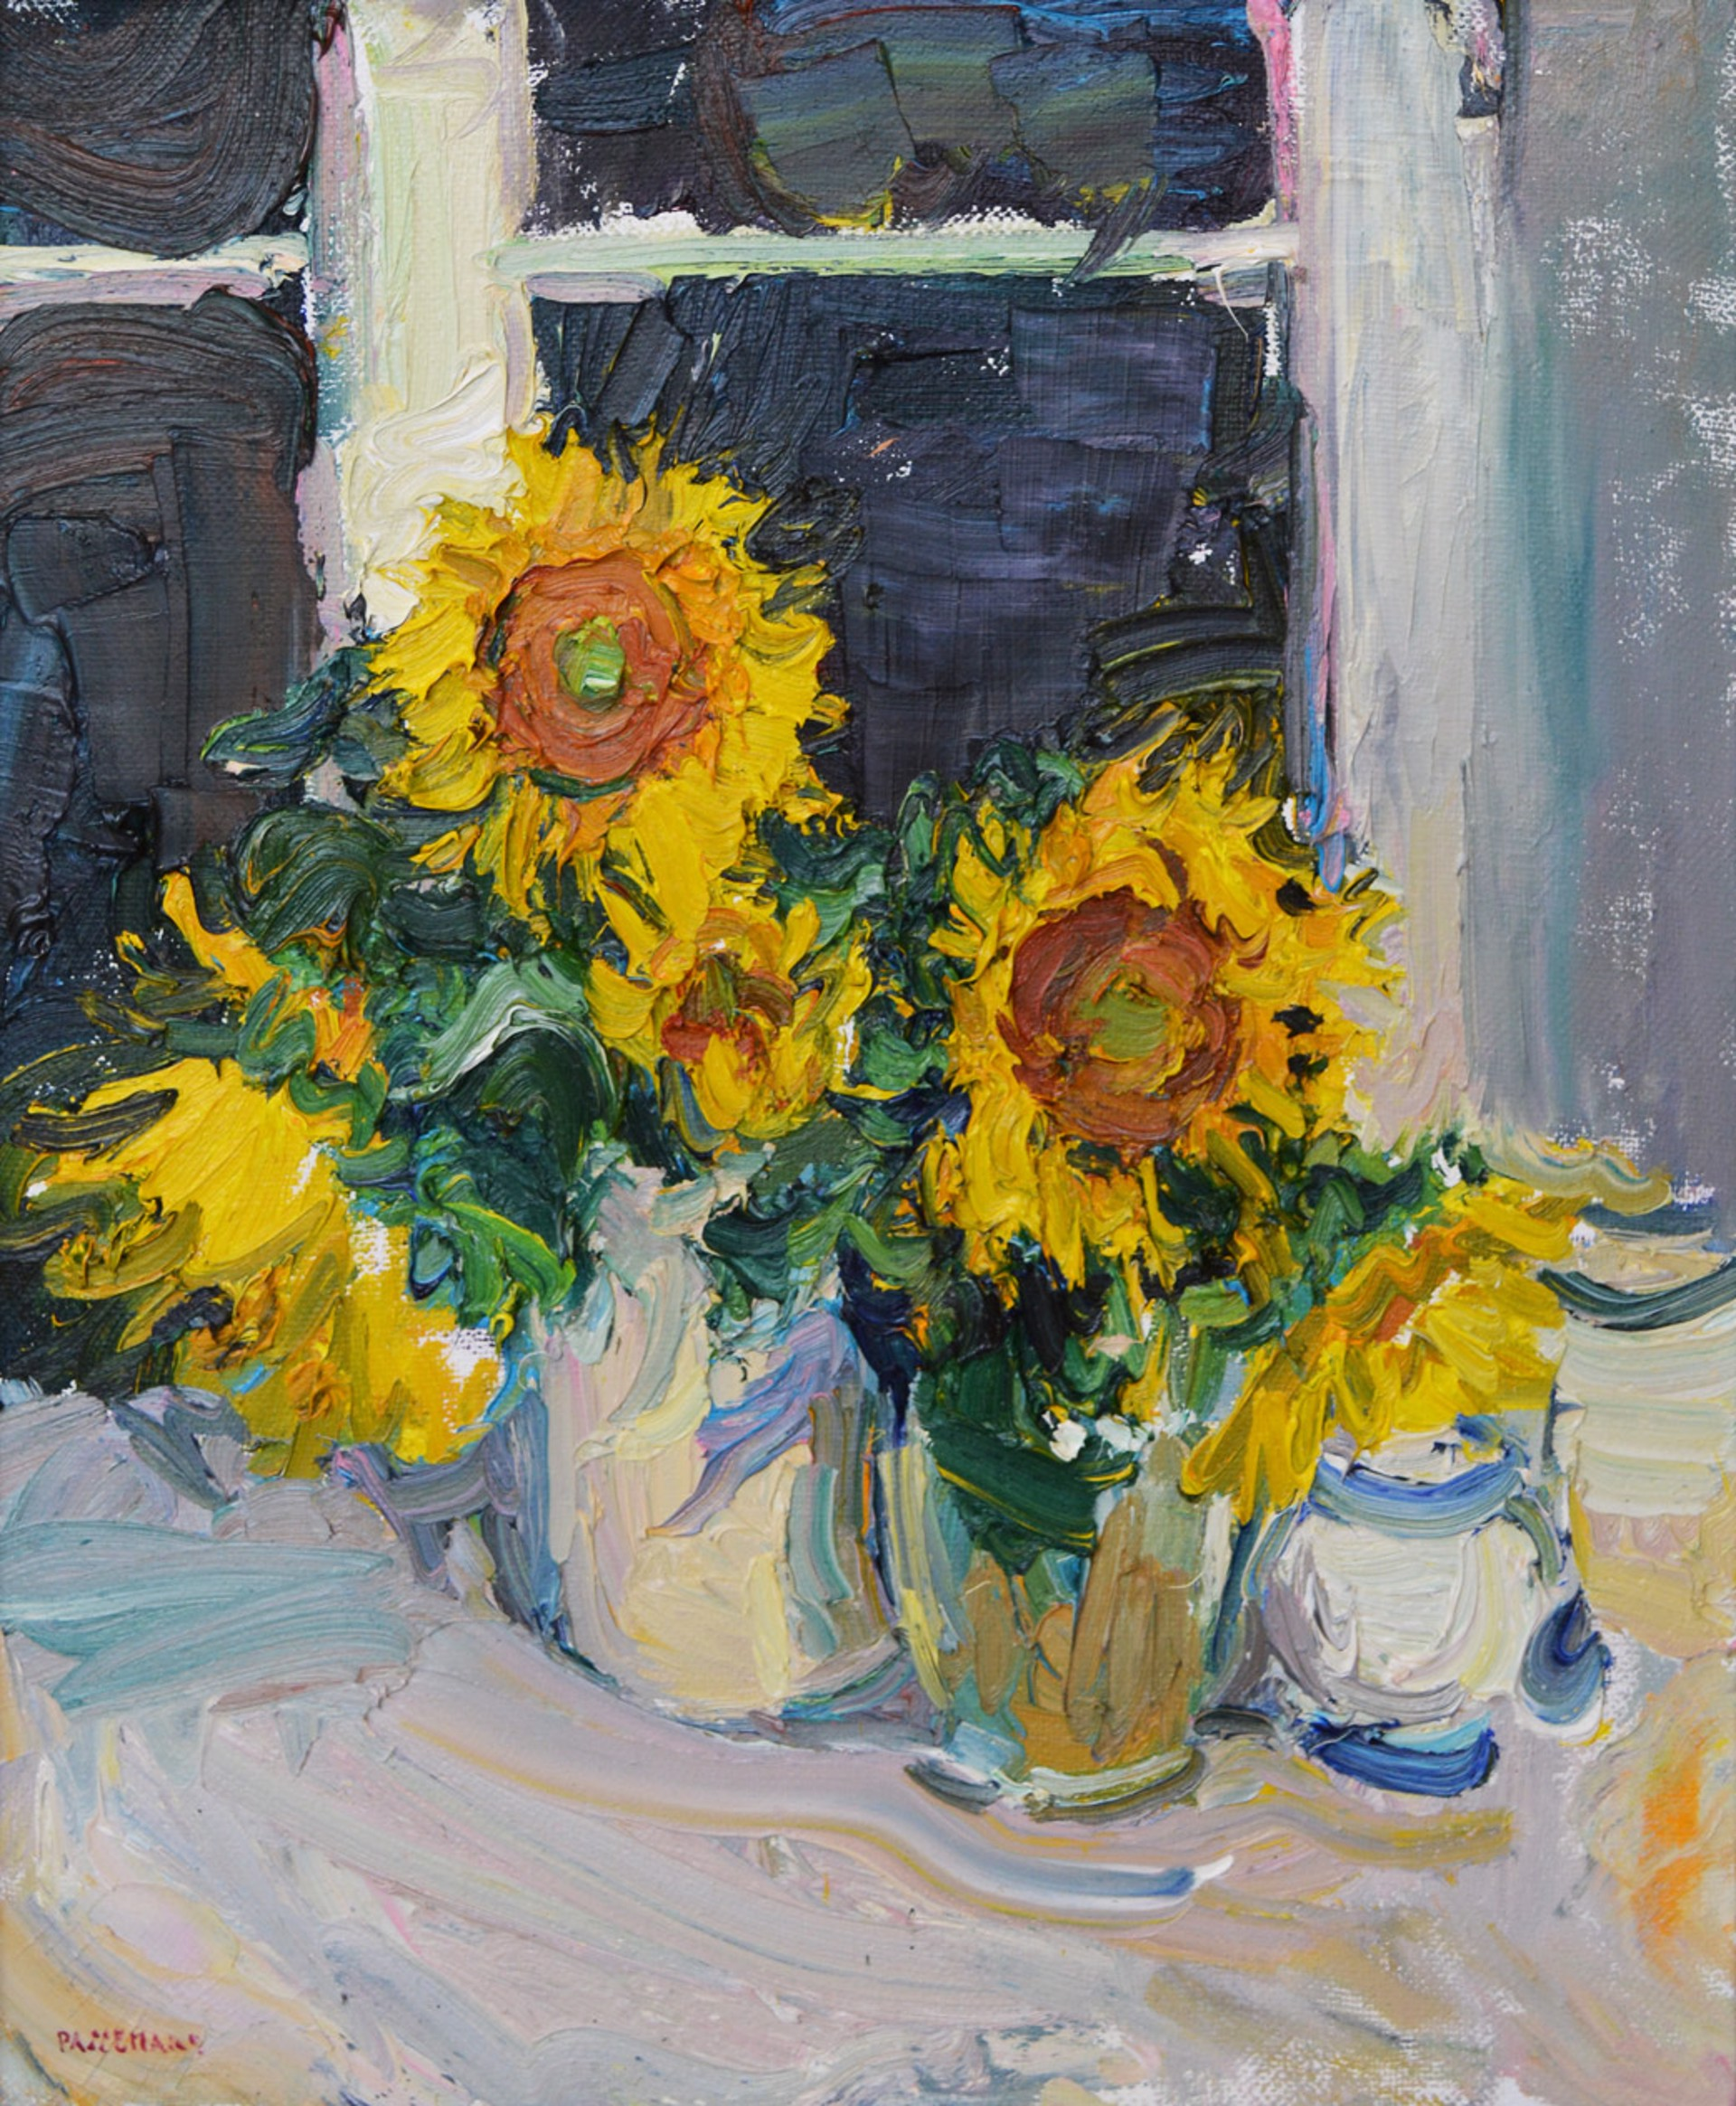 Sunflowers at Night by Antonin Passemard